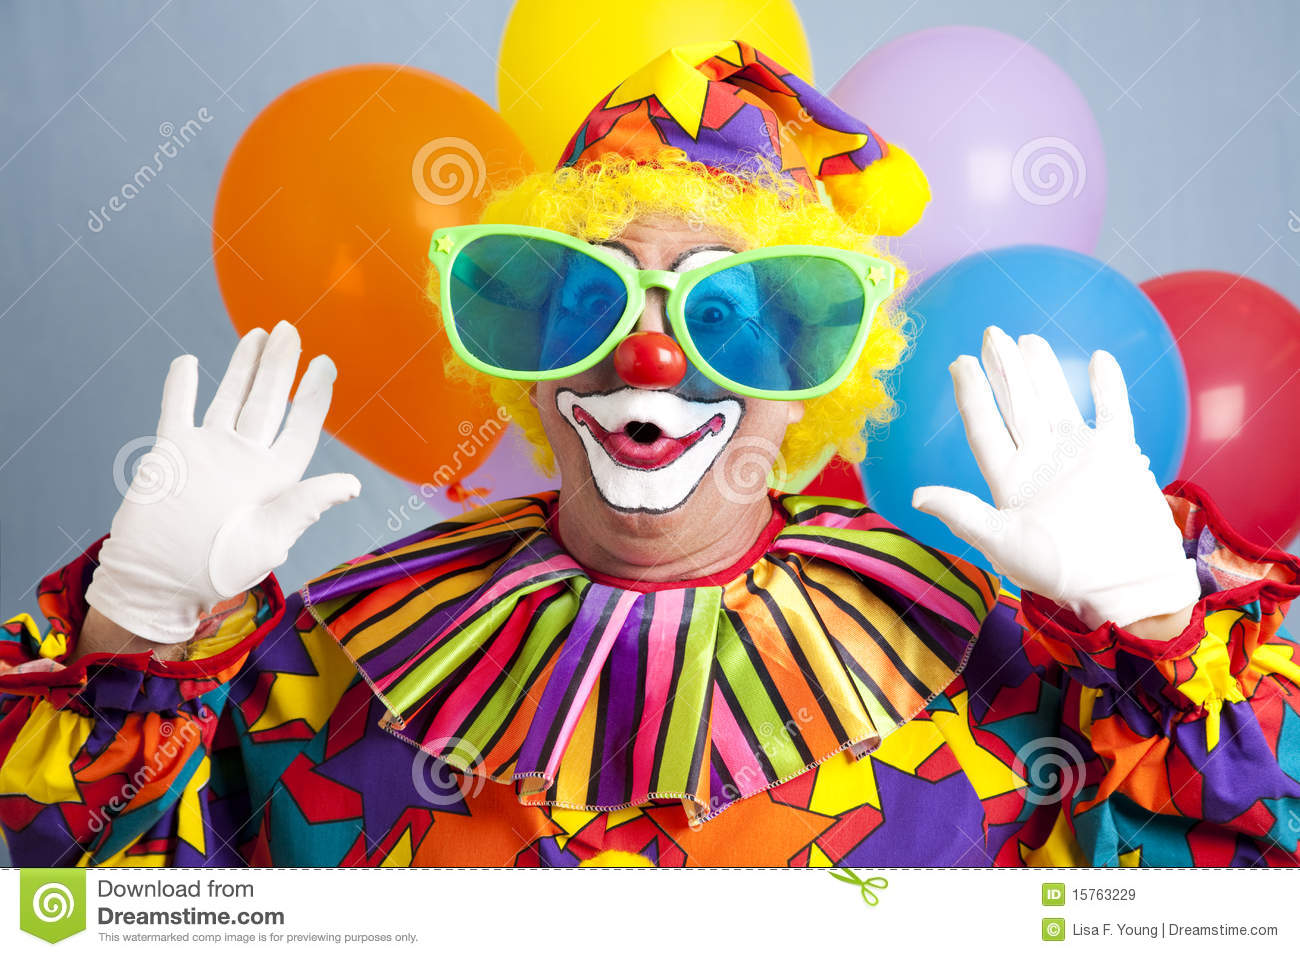 Silly Clown Surprise Royalty Free Stock Images   Image  15763229